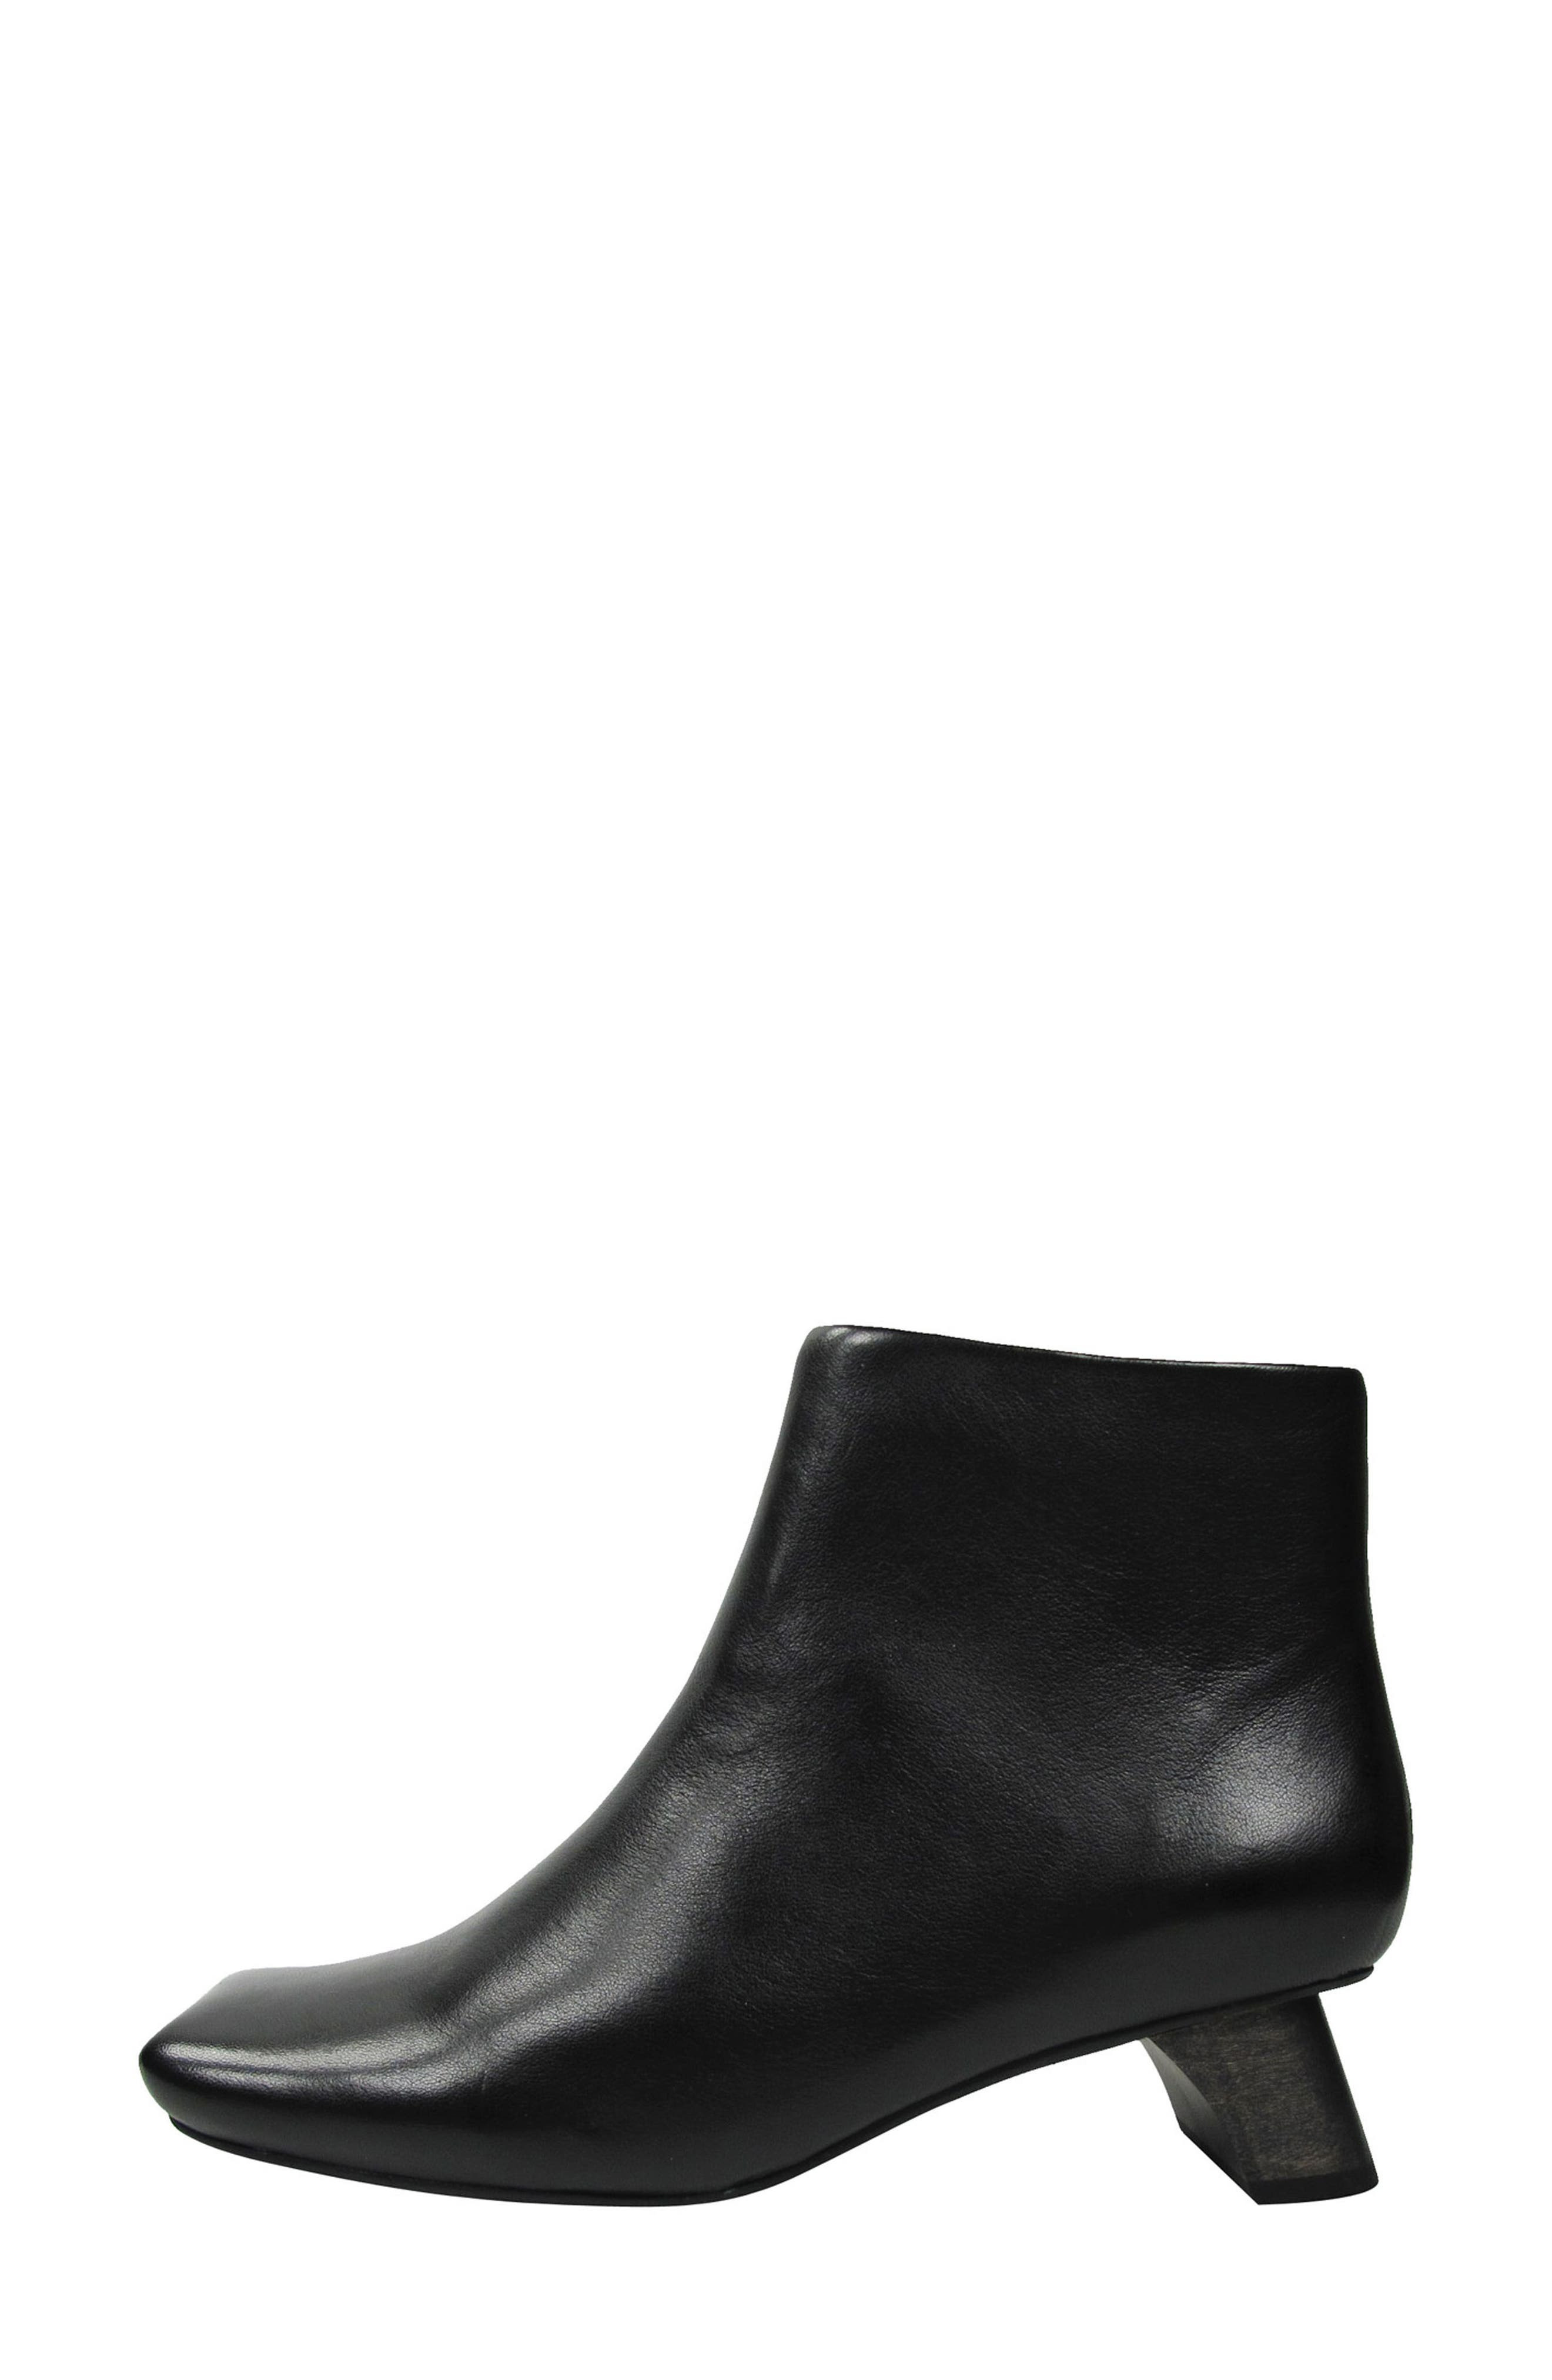 Willomina Bootie,                             Alternate thumbnail 2, color,                             Black Leather